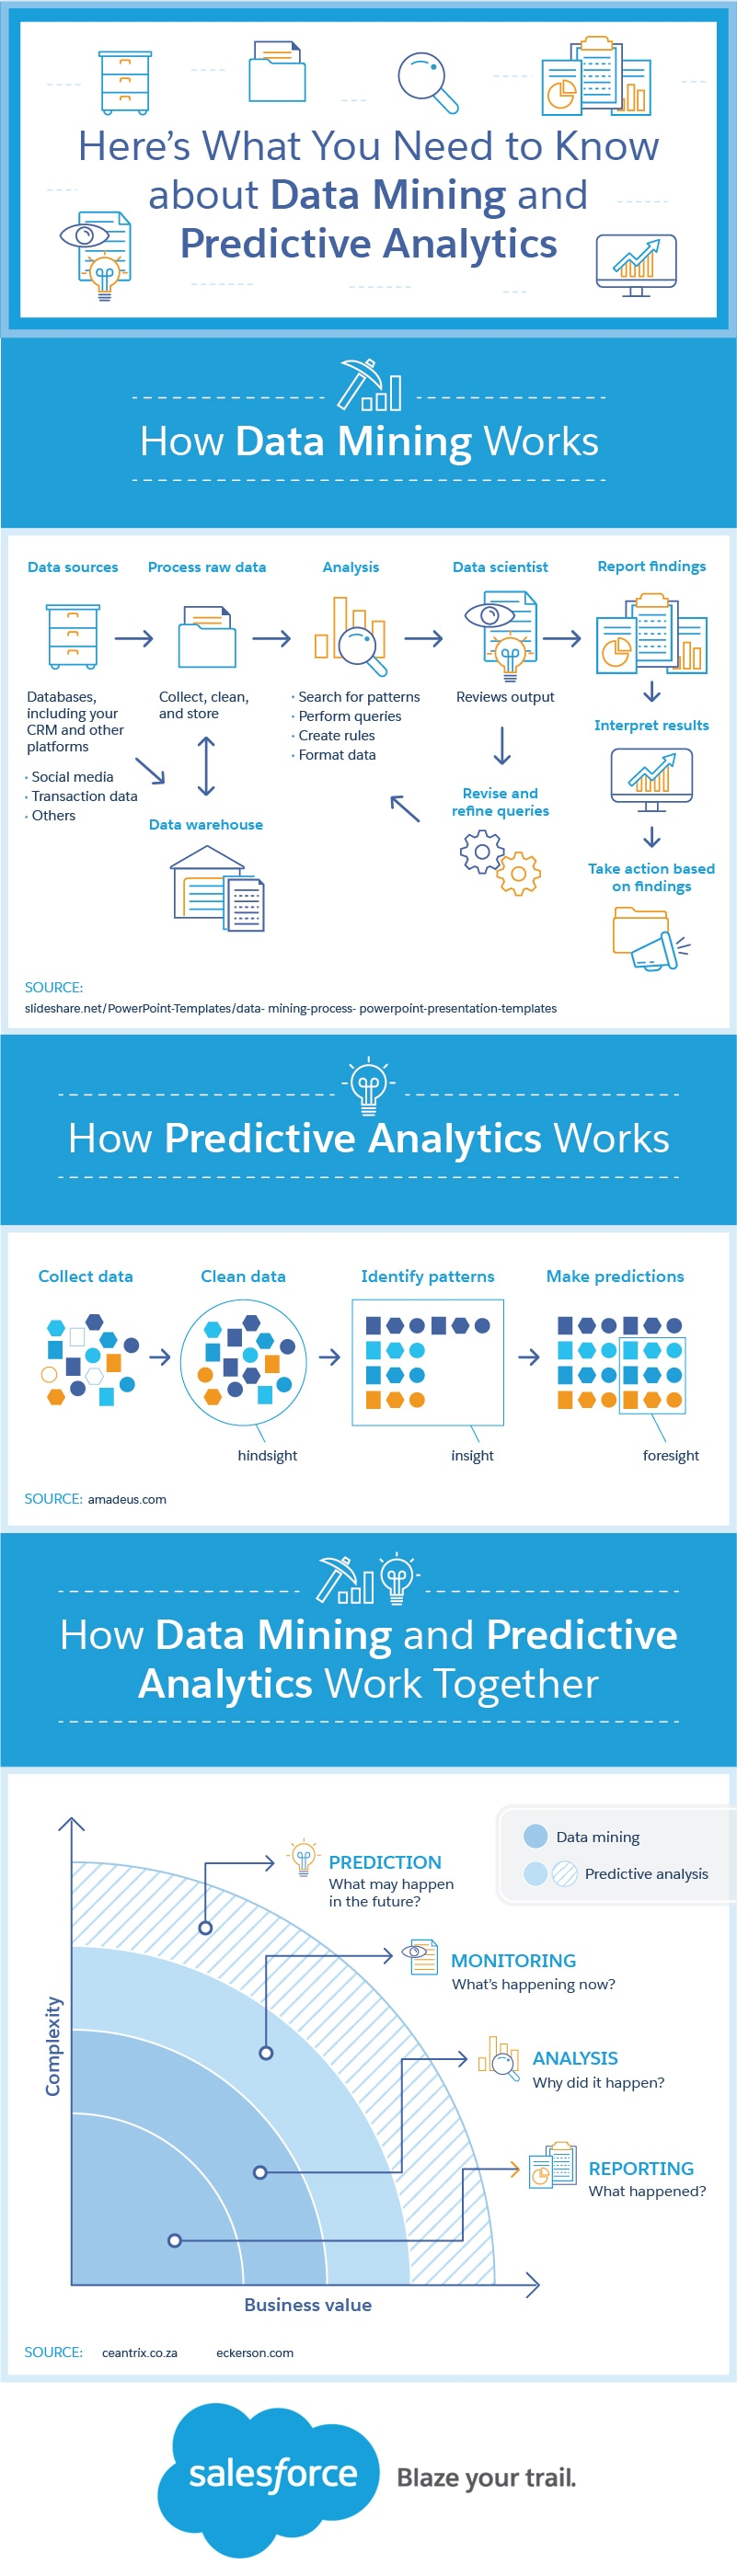 Know About Data Mining & Predictive Analytics - Infographic 1